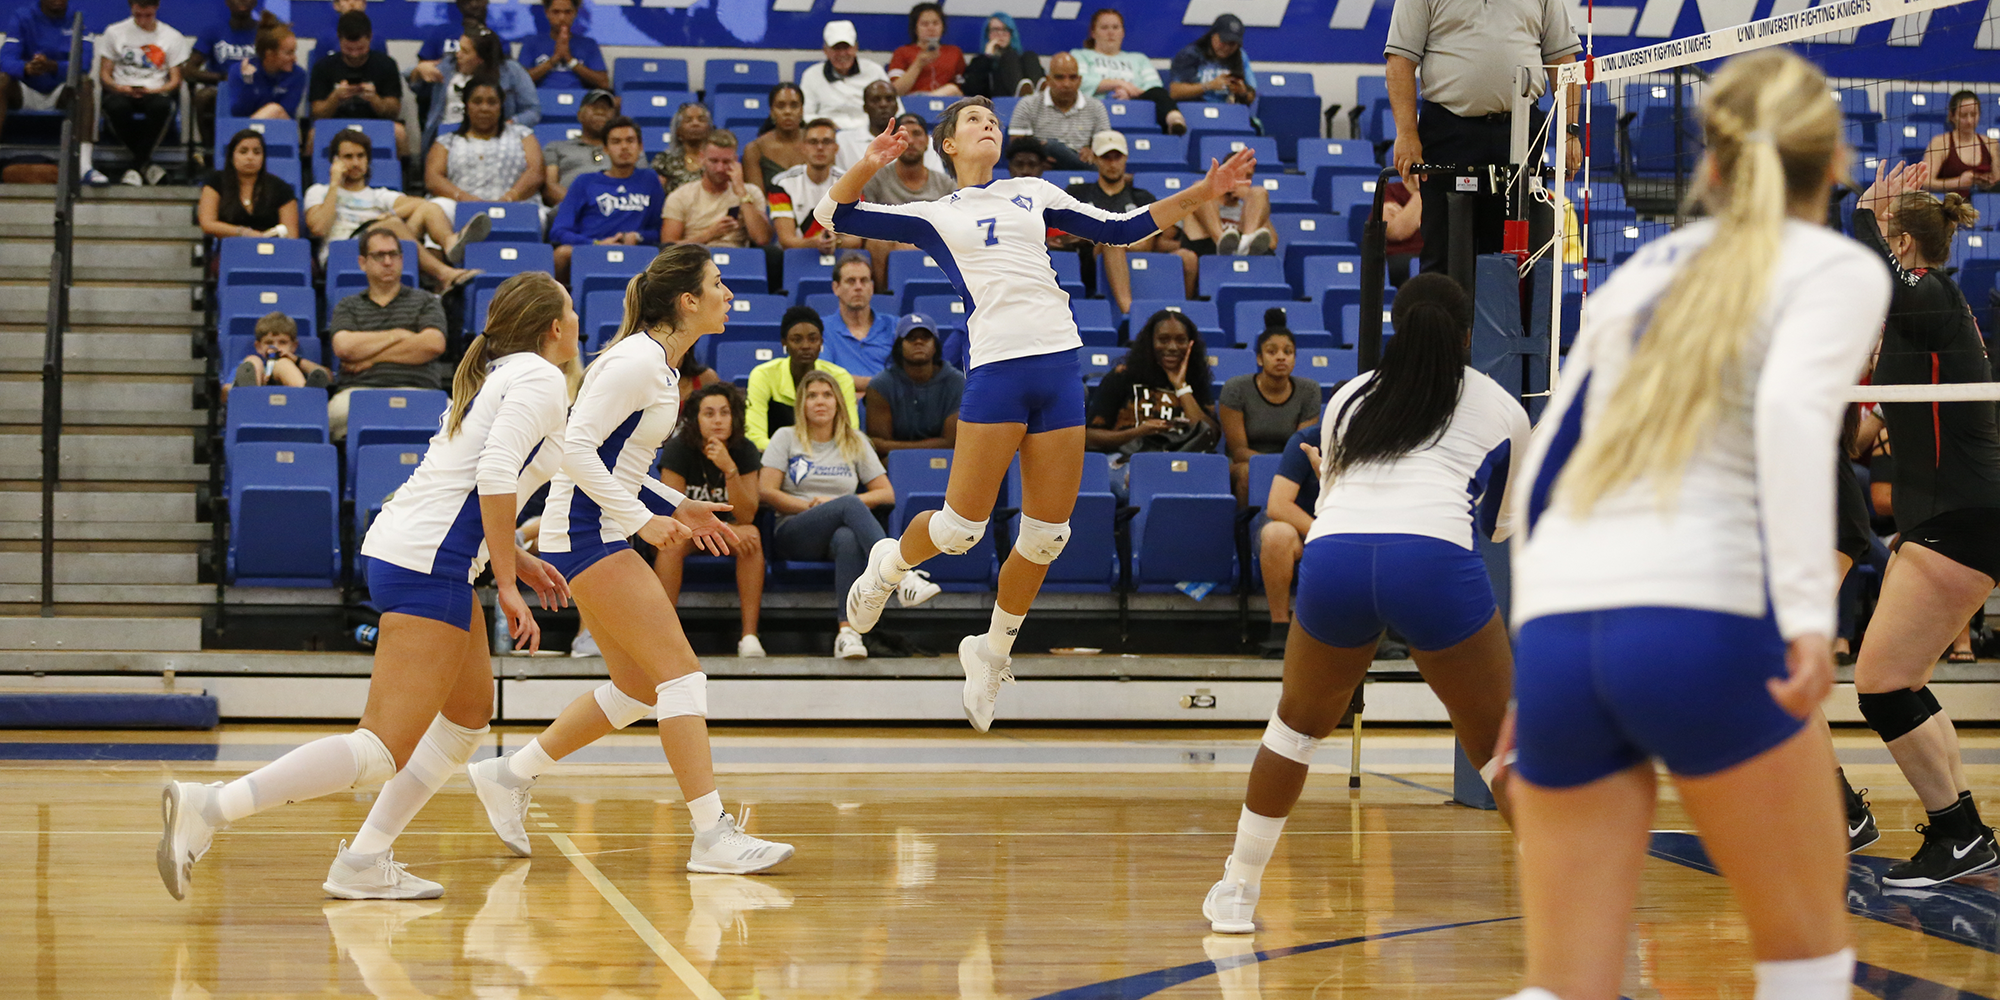 Udovcic joins the 1,000/1,000 Club Highlighting Volleyball's Day 2 Sweep.